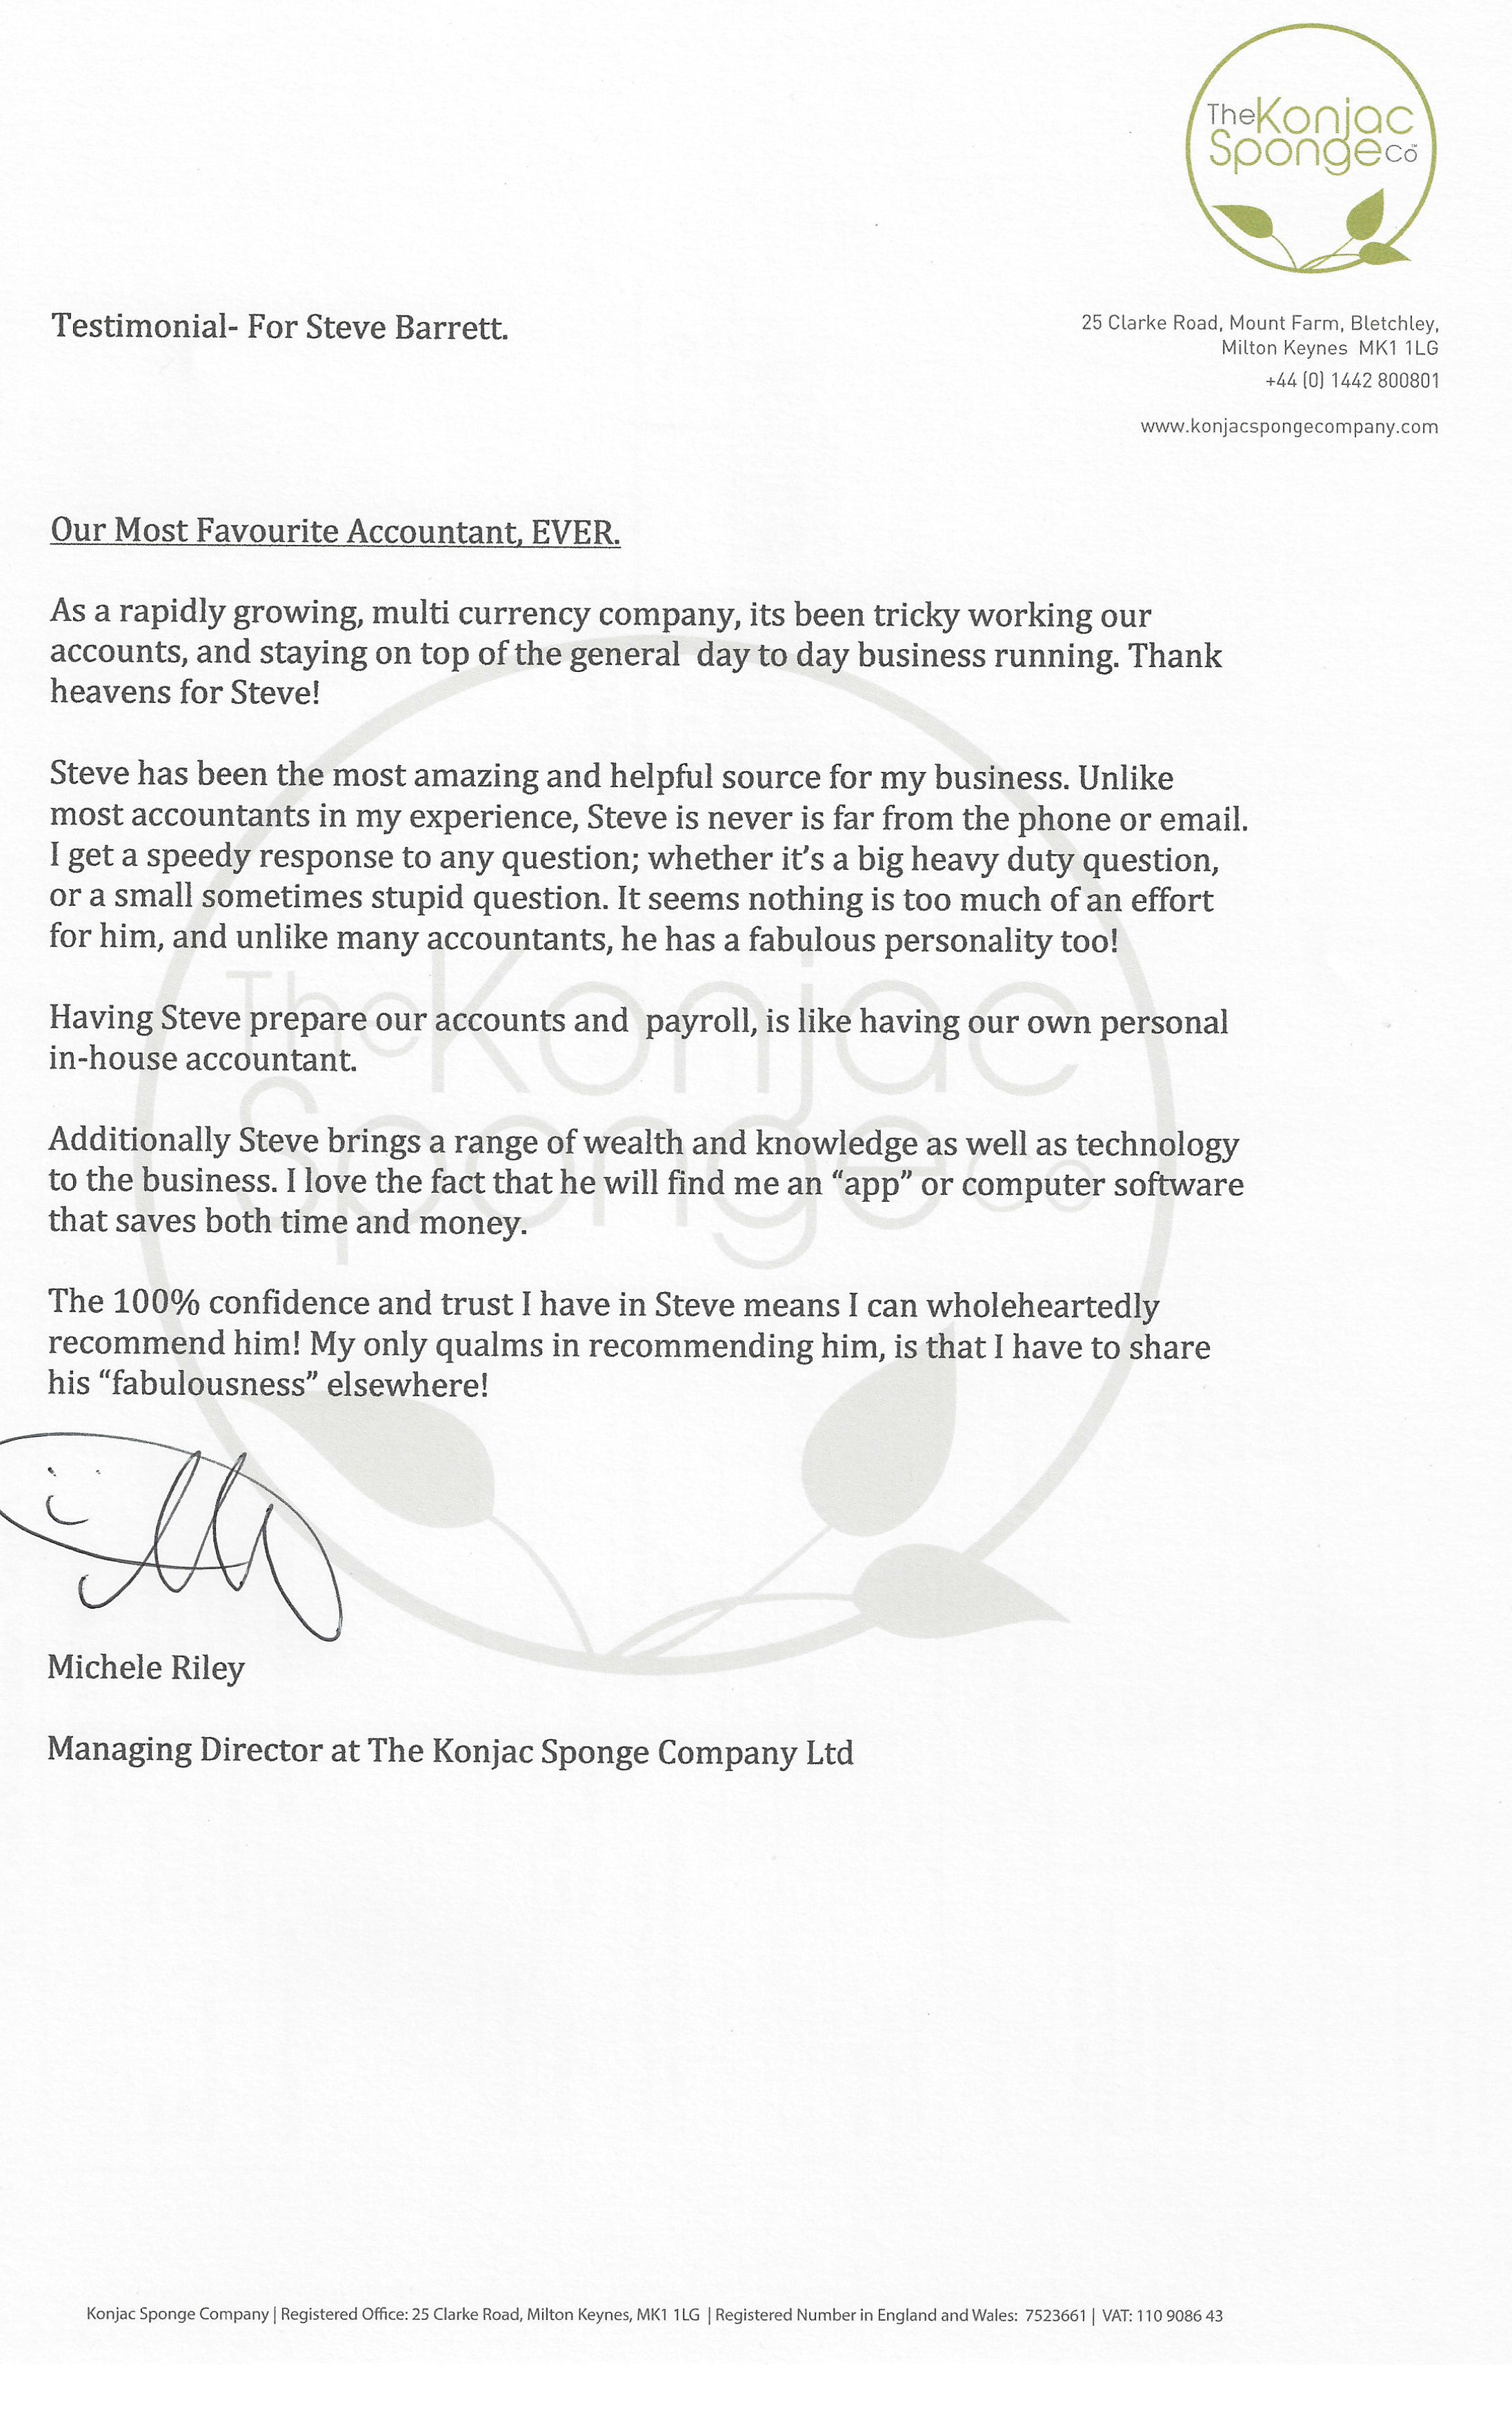 Testimonial for SBA accountants of Leighton Buzzard from The Konjac Sponge Company